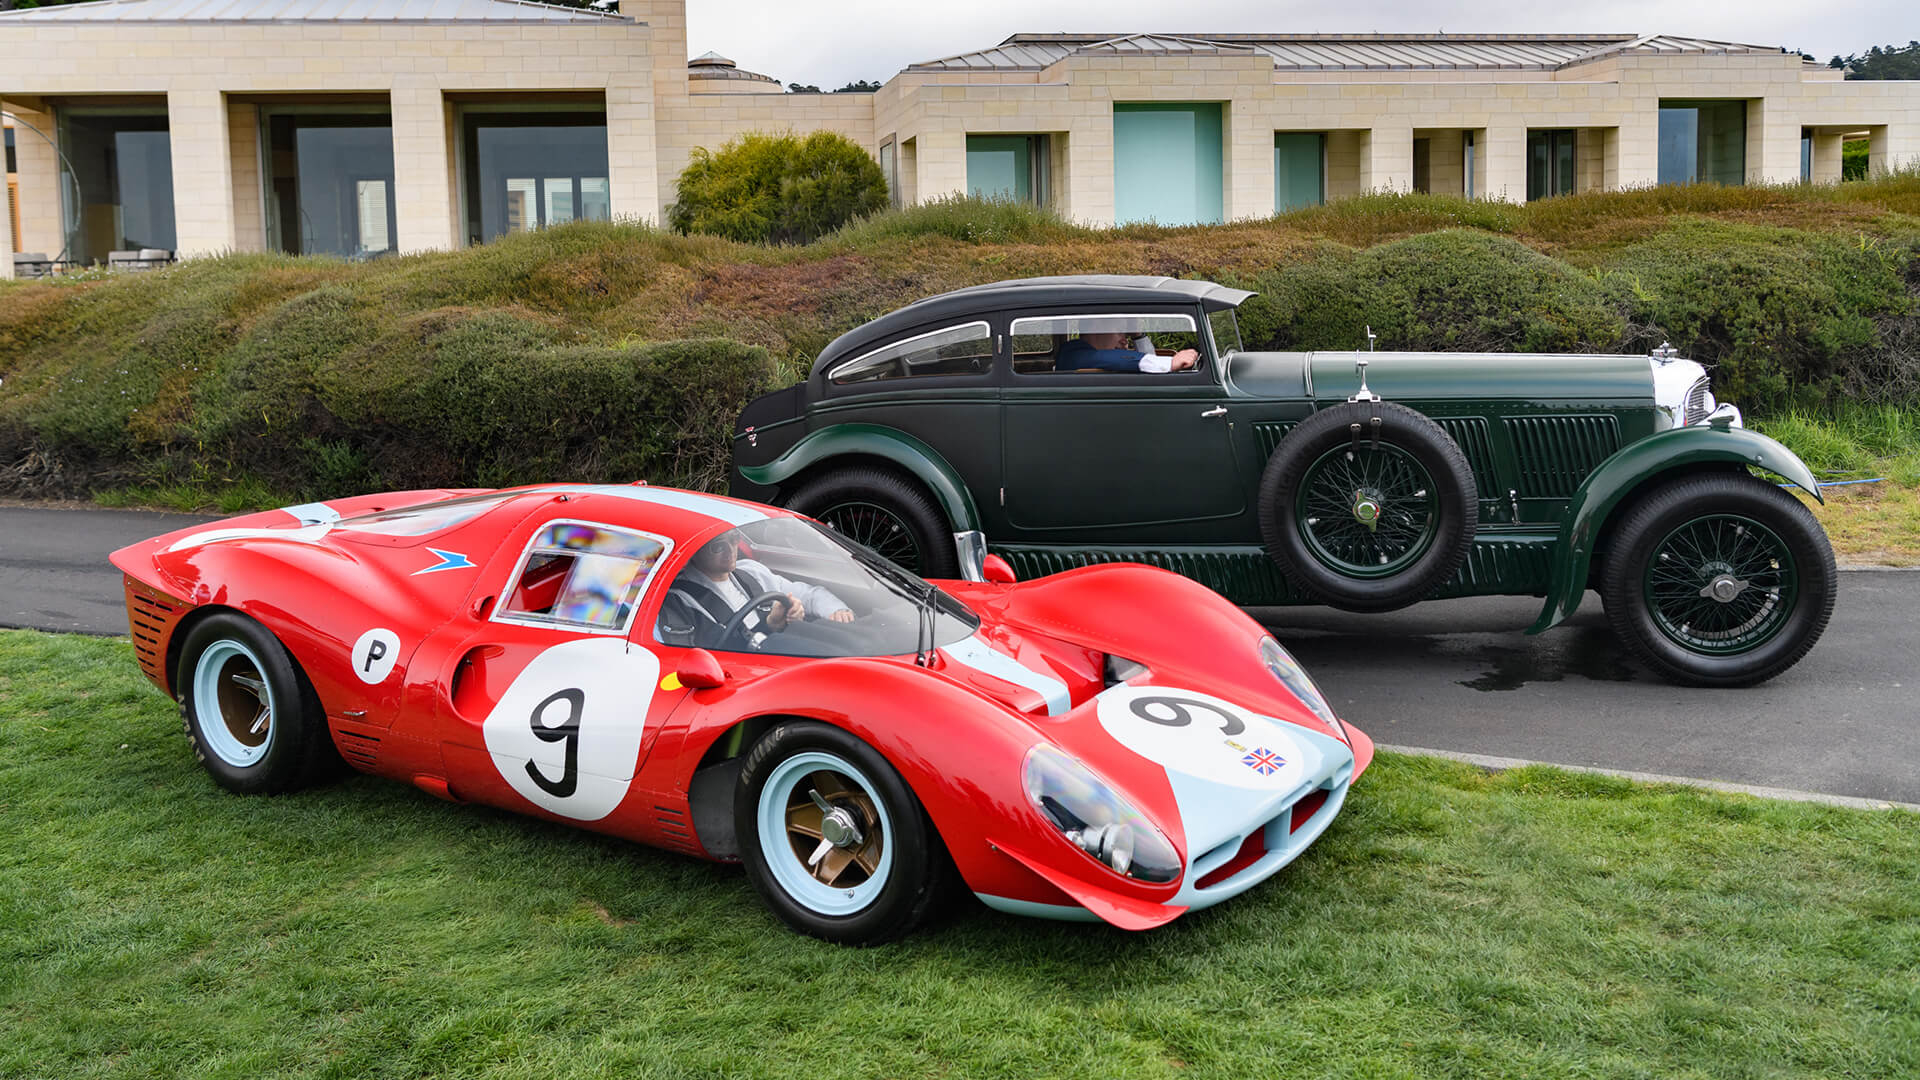 The 2019 Pebble Beach Concours d'Elegance